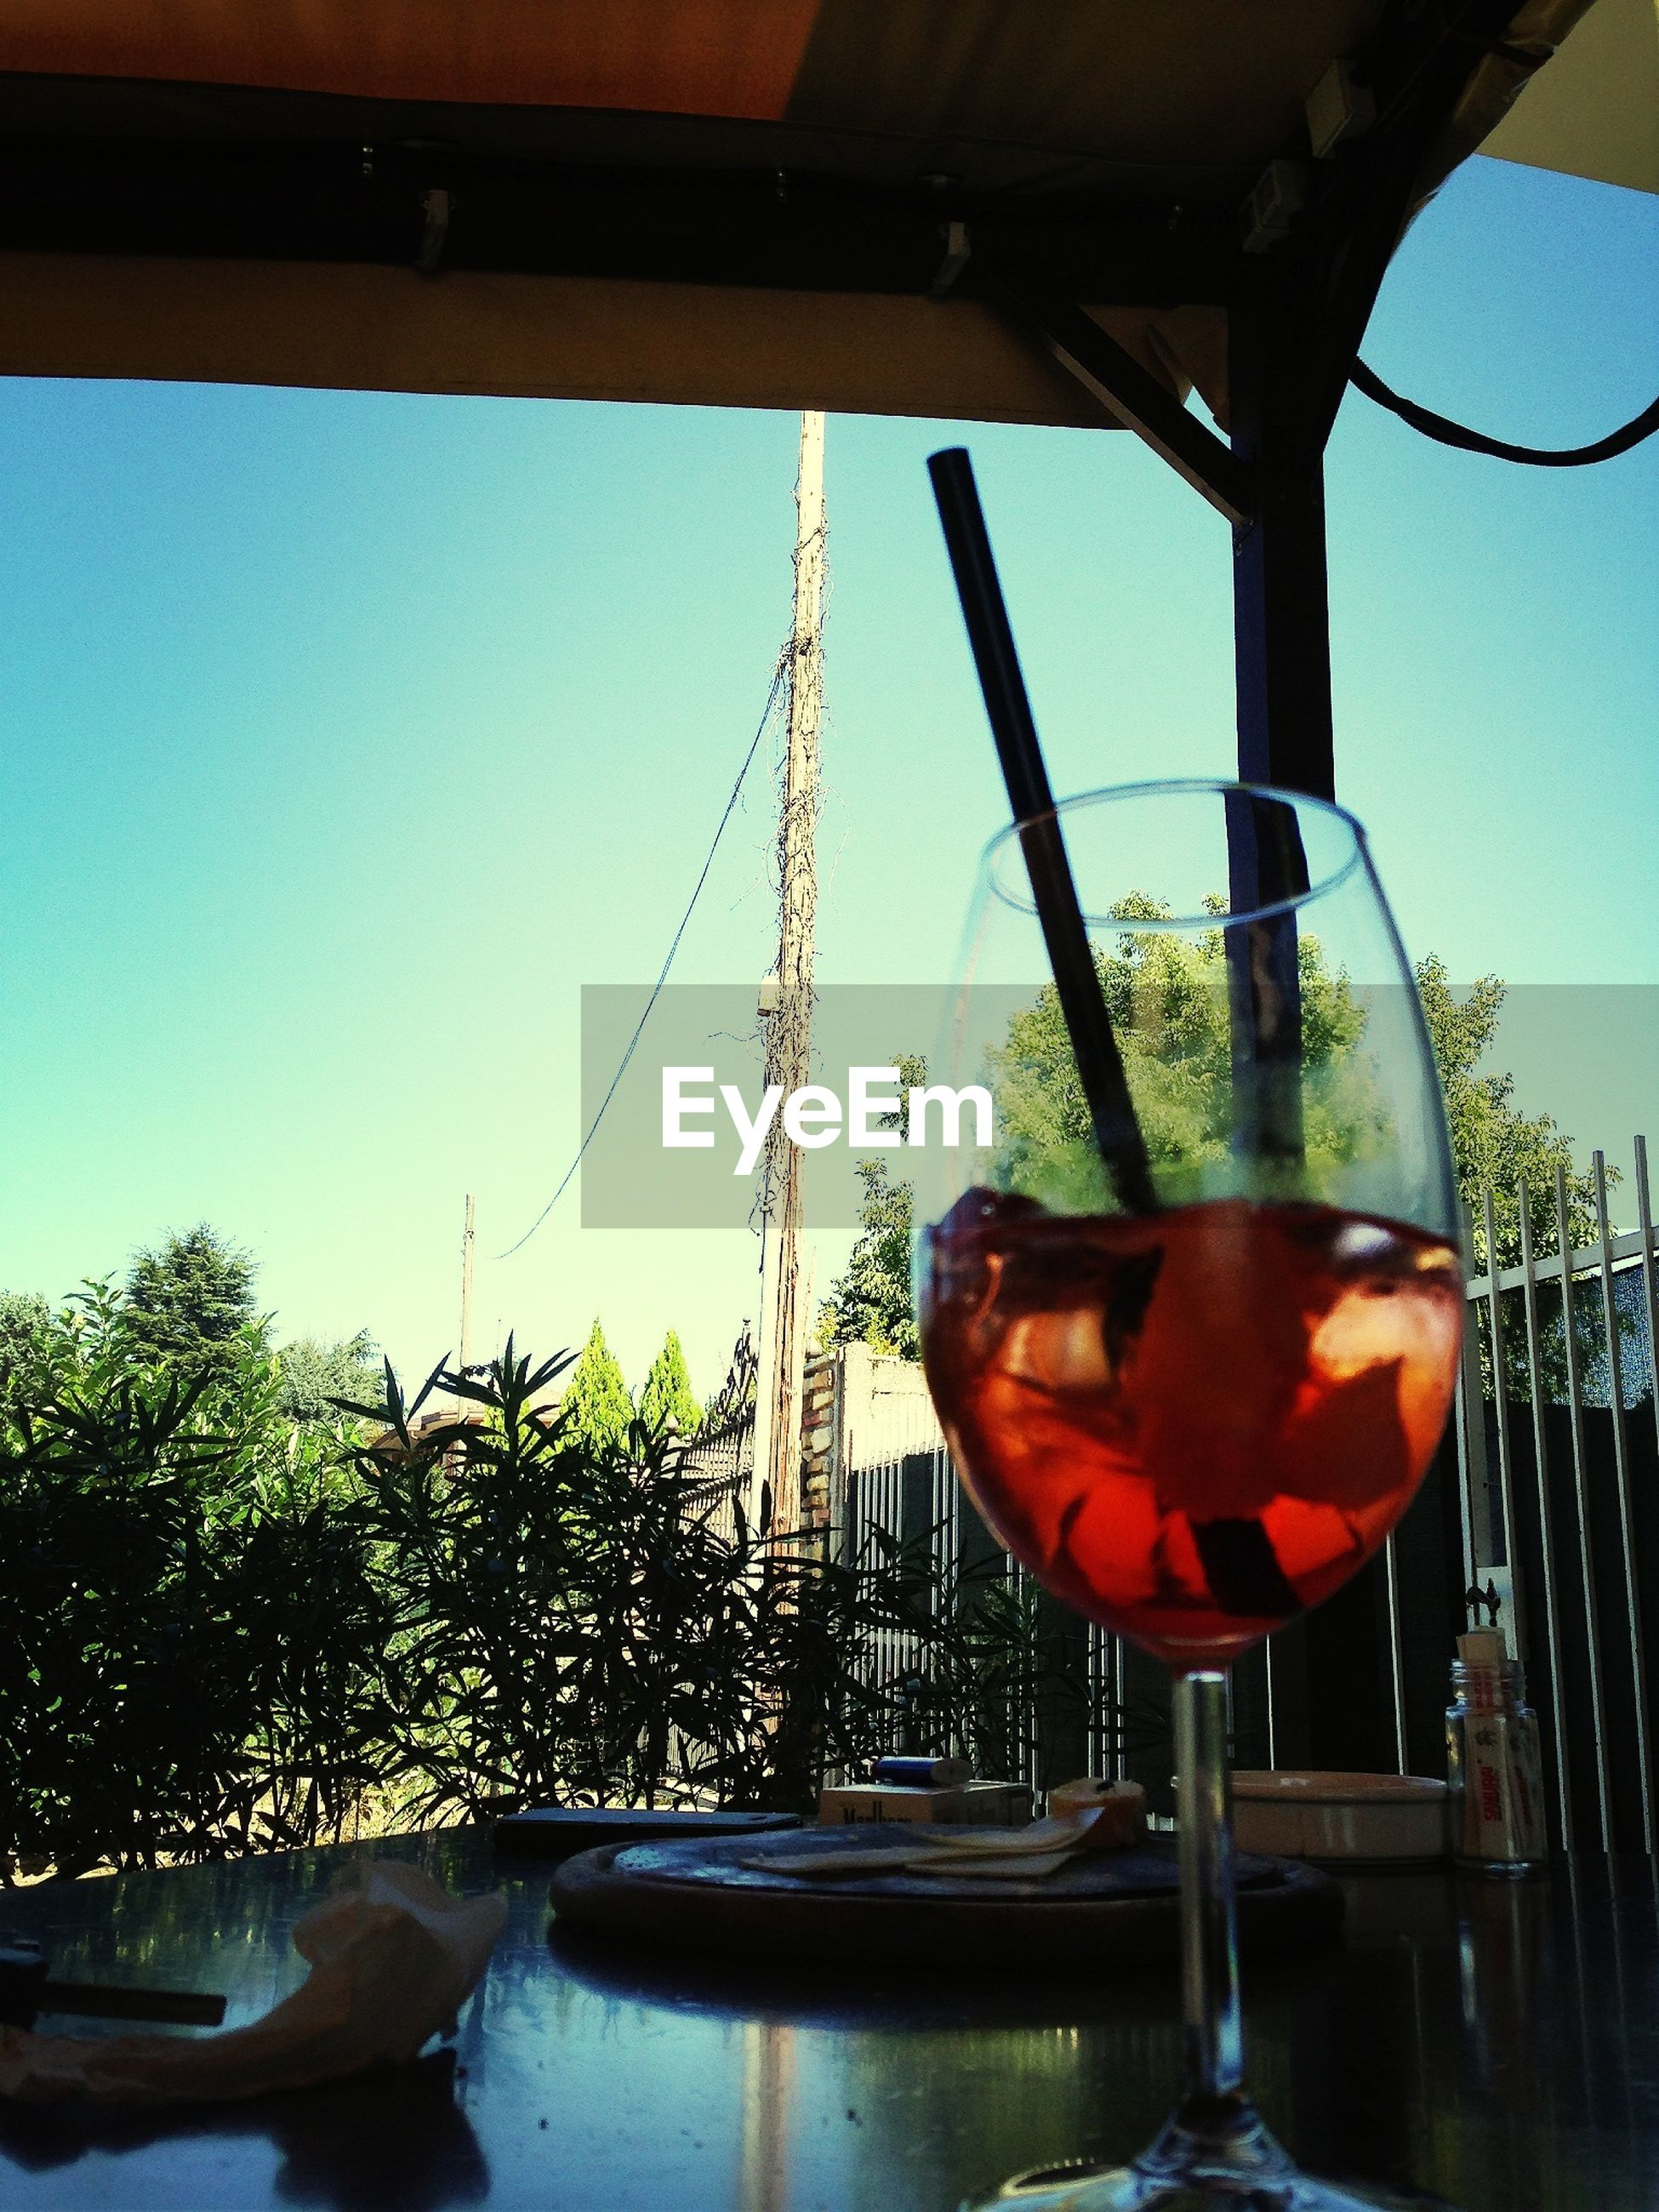 clear sky, food and drink, table, indoors, glass - material, sunlight, window, close-up, no people, transparent, built structure, tree, day, hanging, chair, house, architecture, metal, sky